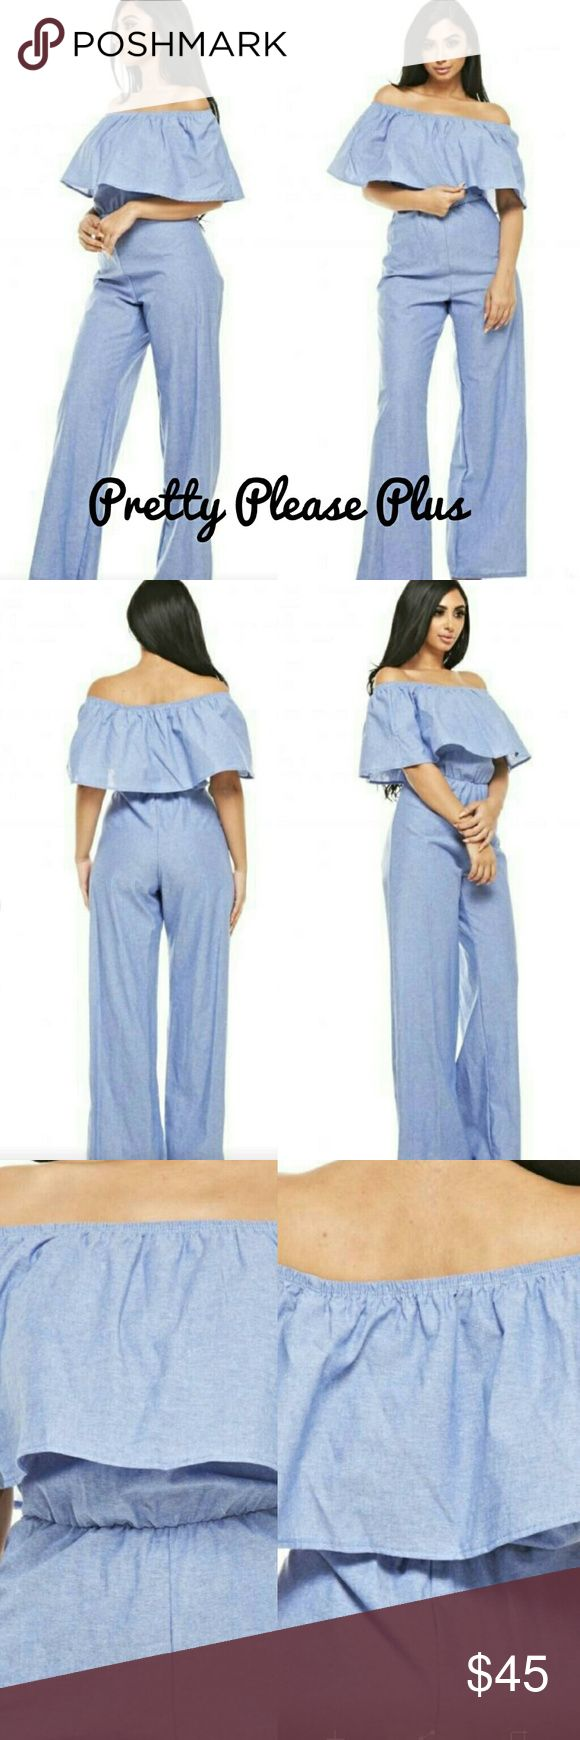 ❤NEW Plus size Jumper Stunning plus size chambray off shoulder jumper. Fits true to size and is absolutely sexy Pants